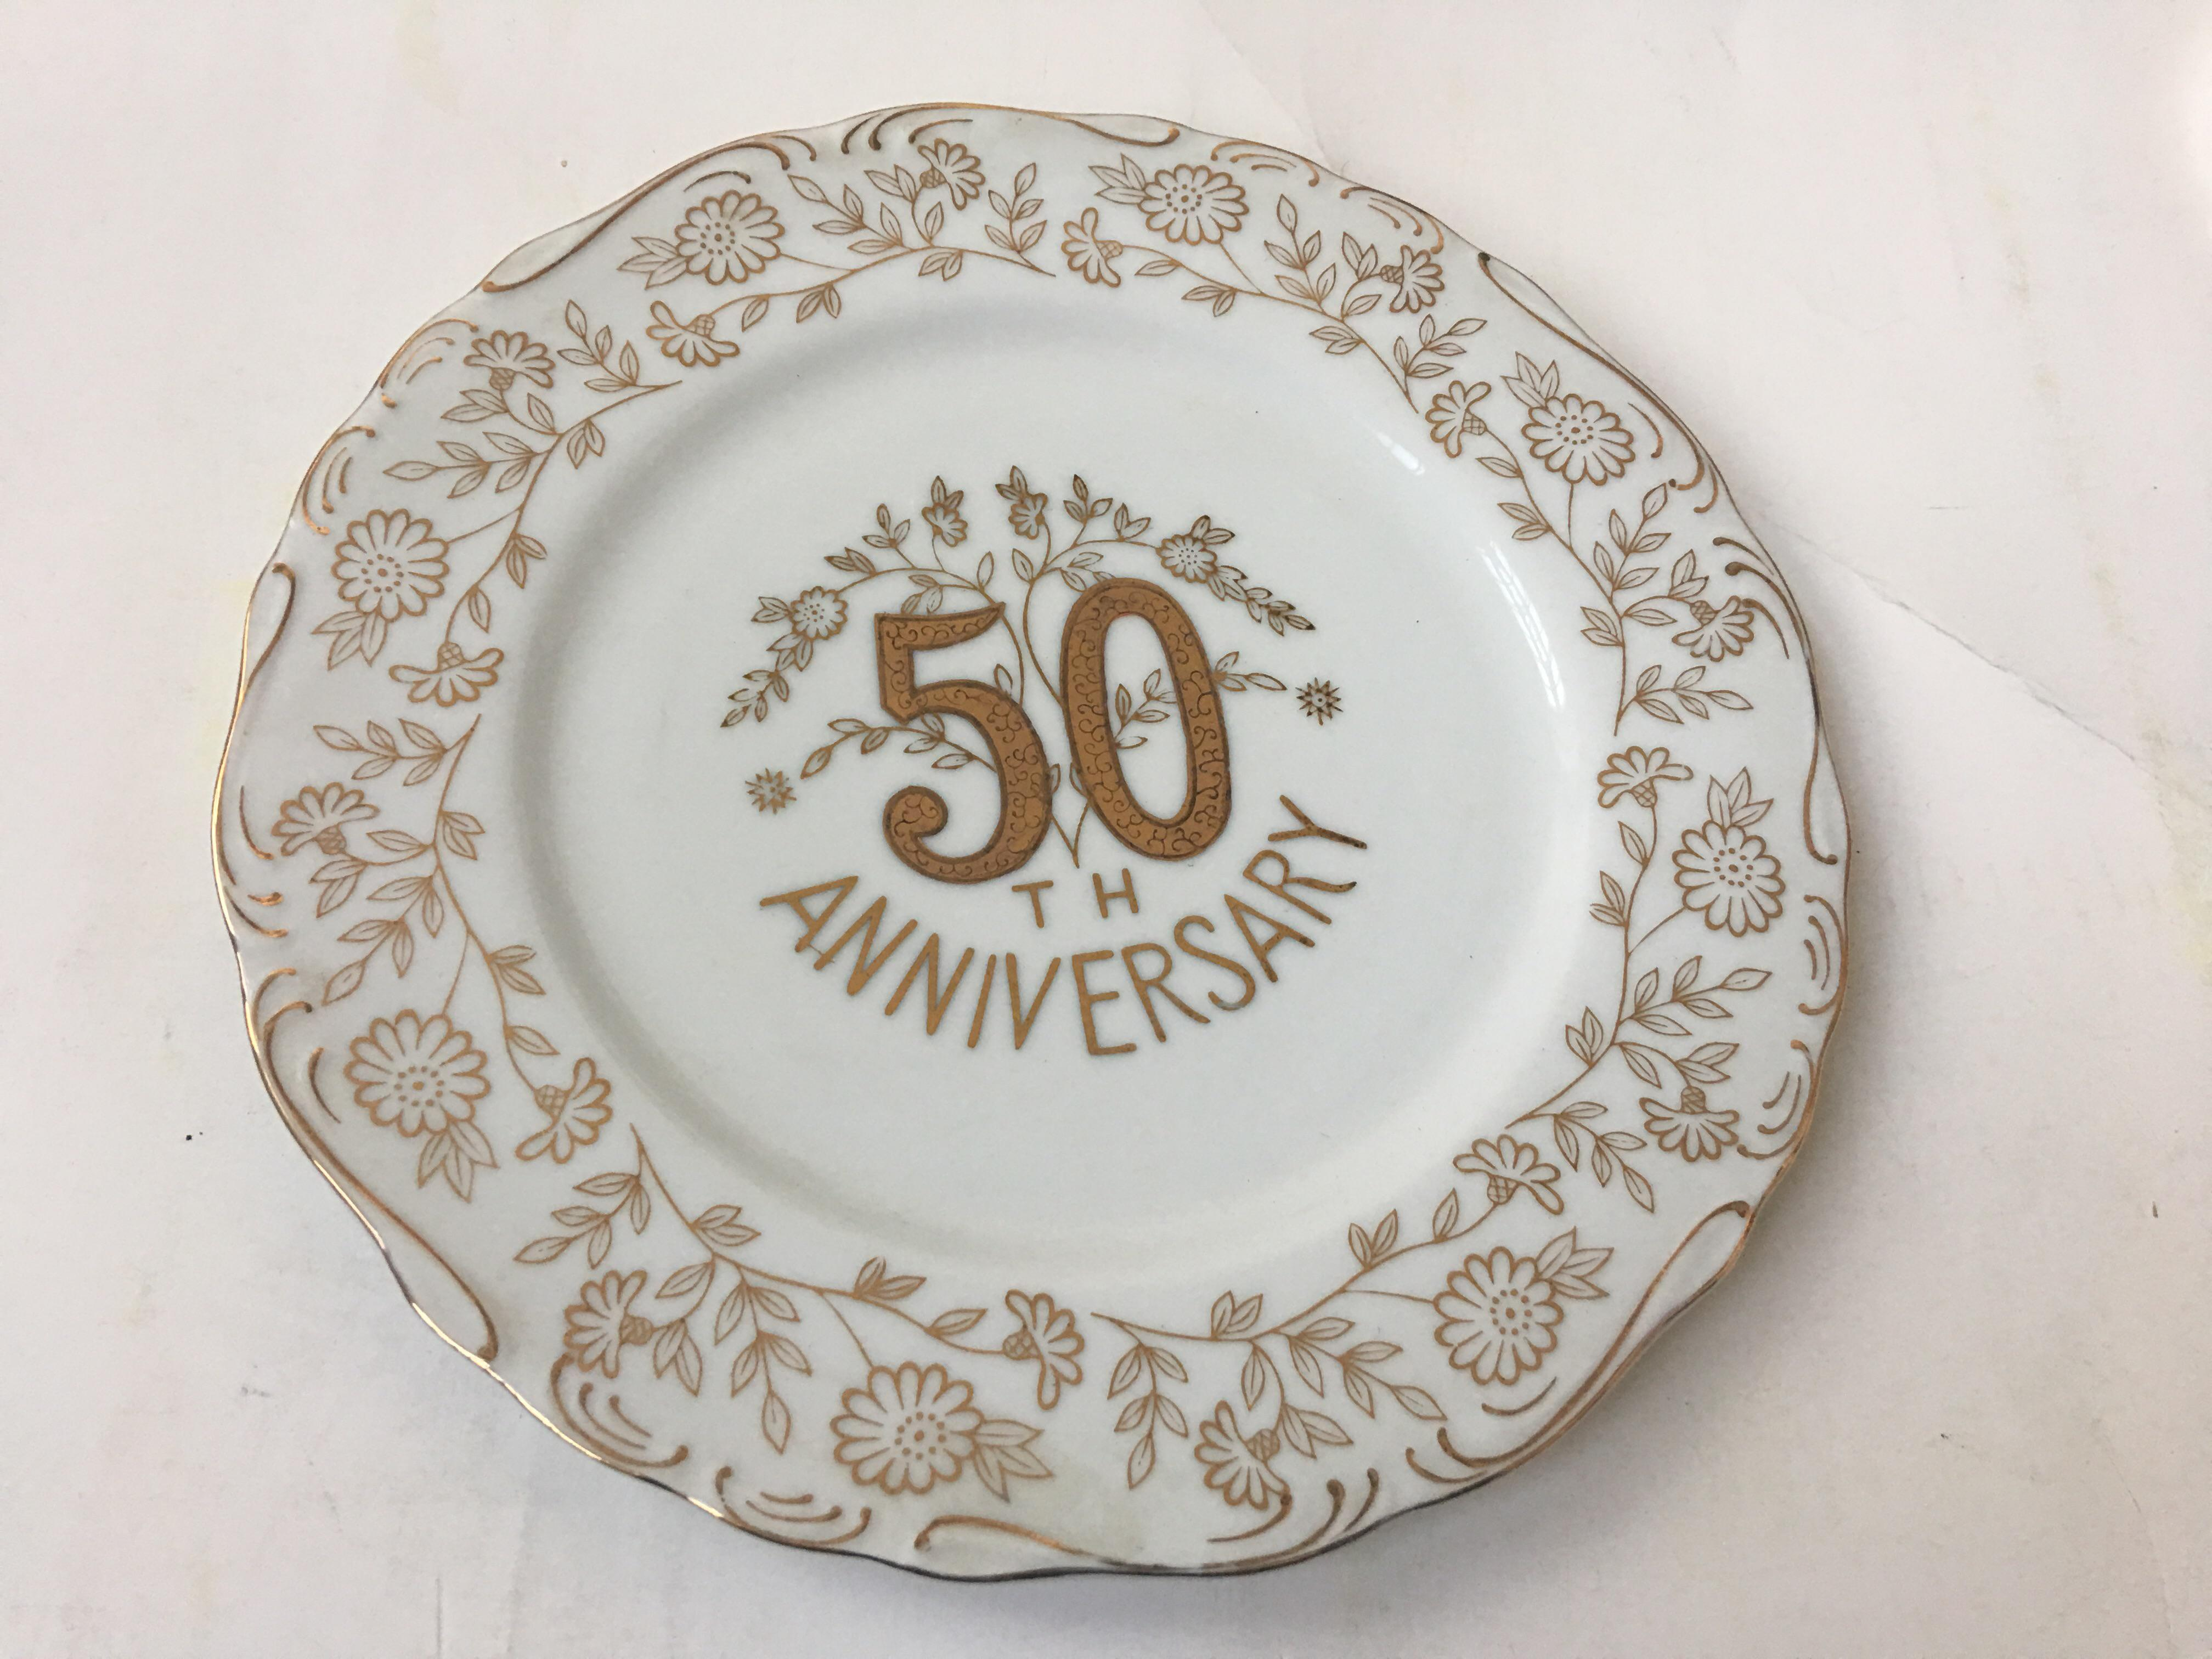 Norcrest Fine China 50th Anniversary Plate - Image 6 of 6  sc 1 st  Chairish & Norcrest Fine China 50th Anniversary Plate | Chairish